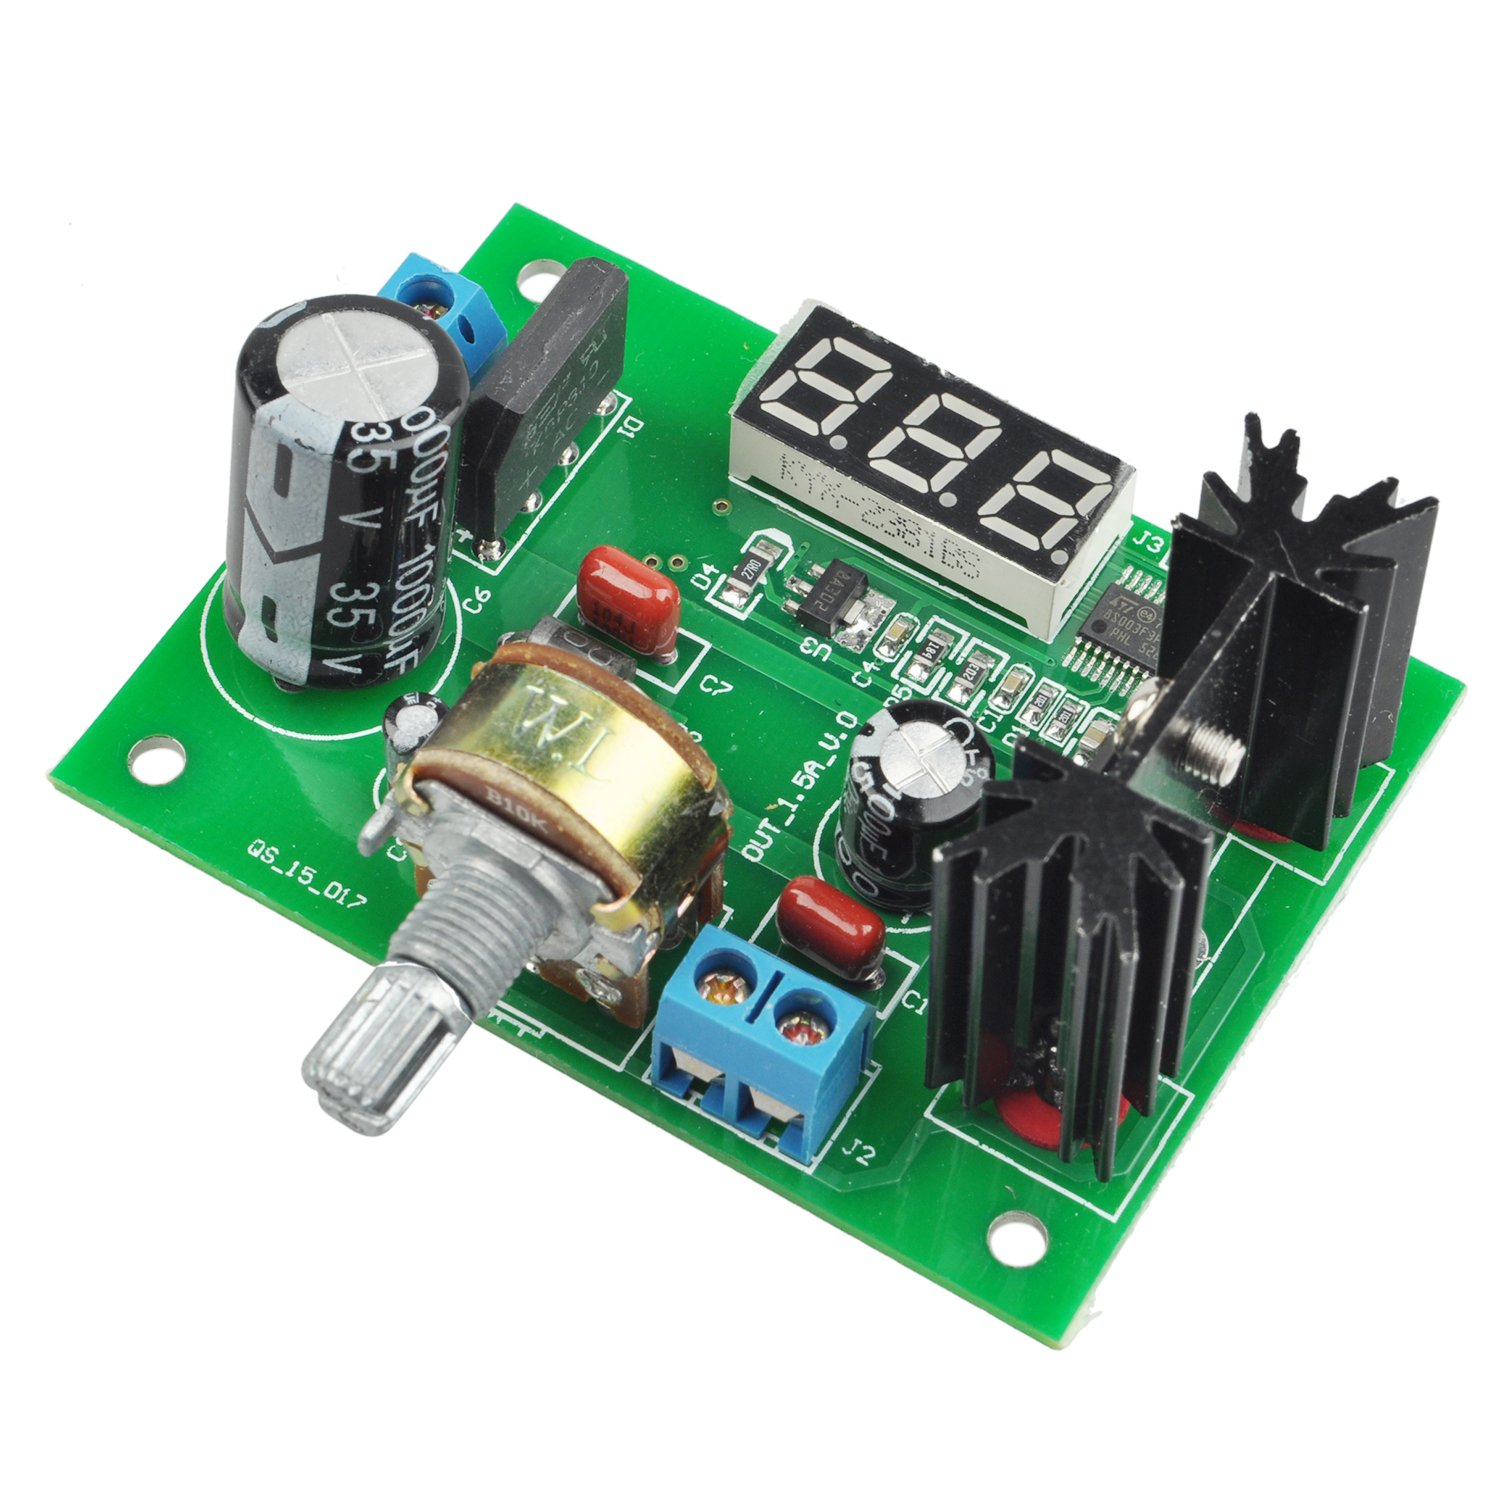 SODIAL(R) New LM317 Adjustable Voltage Regulator Step-down Power Supply Module with LED Meter 049892